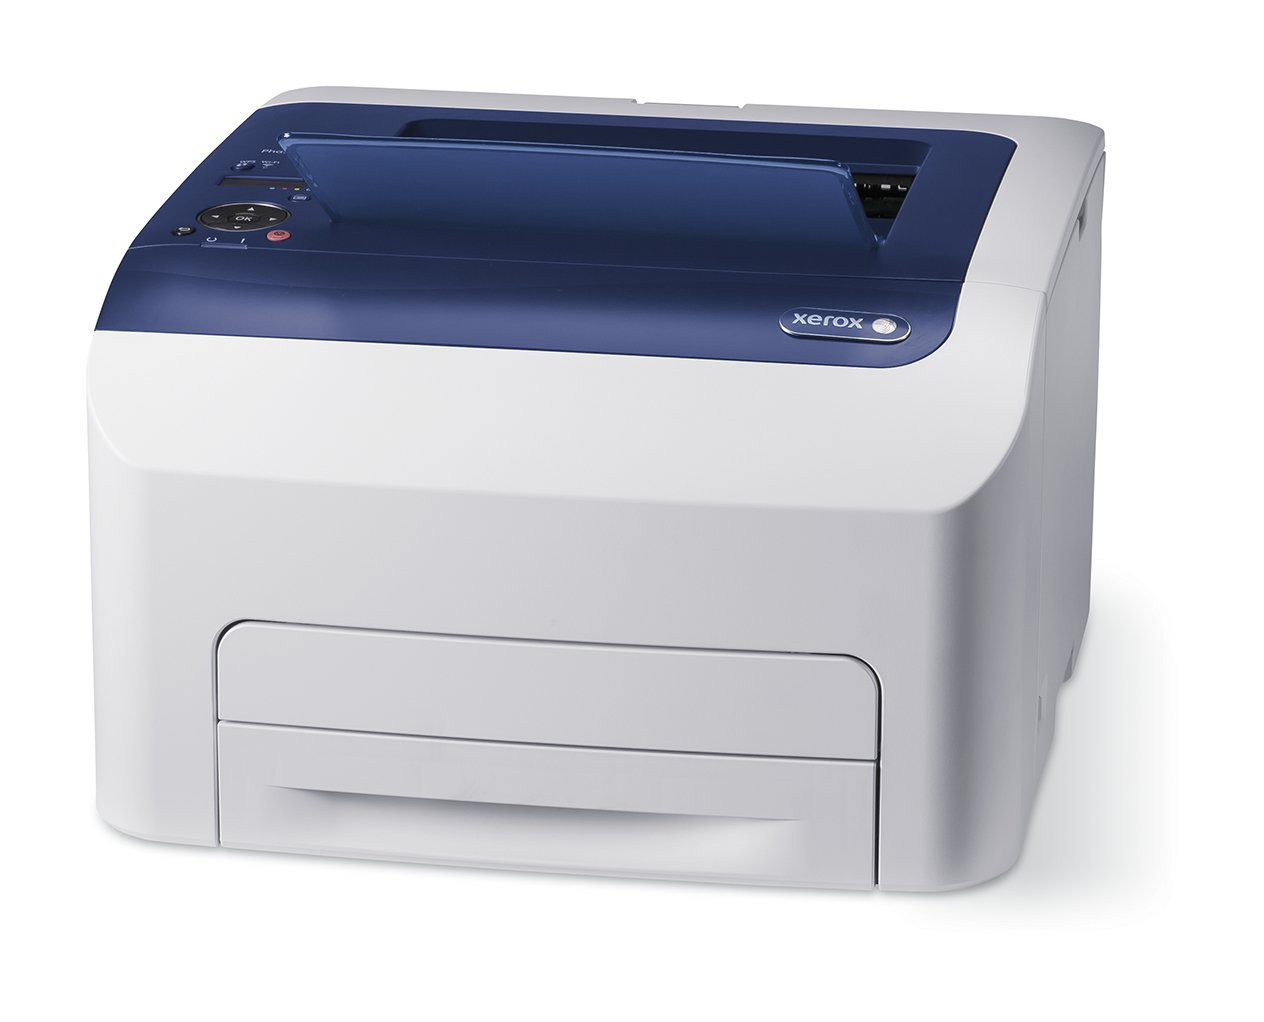 Xerox Phaser Color Laser Printer. I use this laser printer for printing color laser images or if I'm too lazy to walk upstairs for my black and white printer!